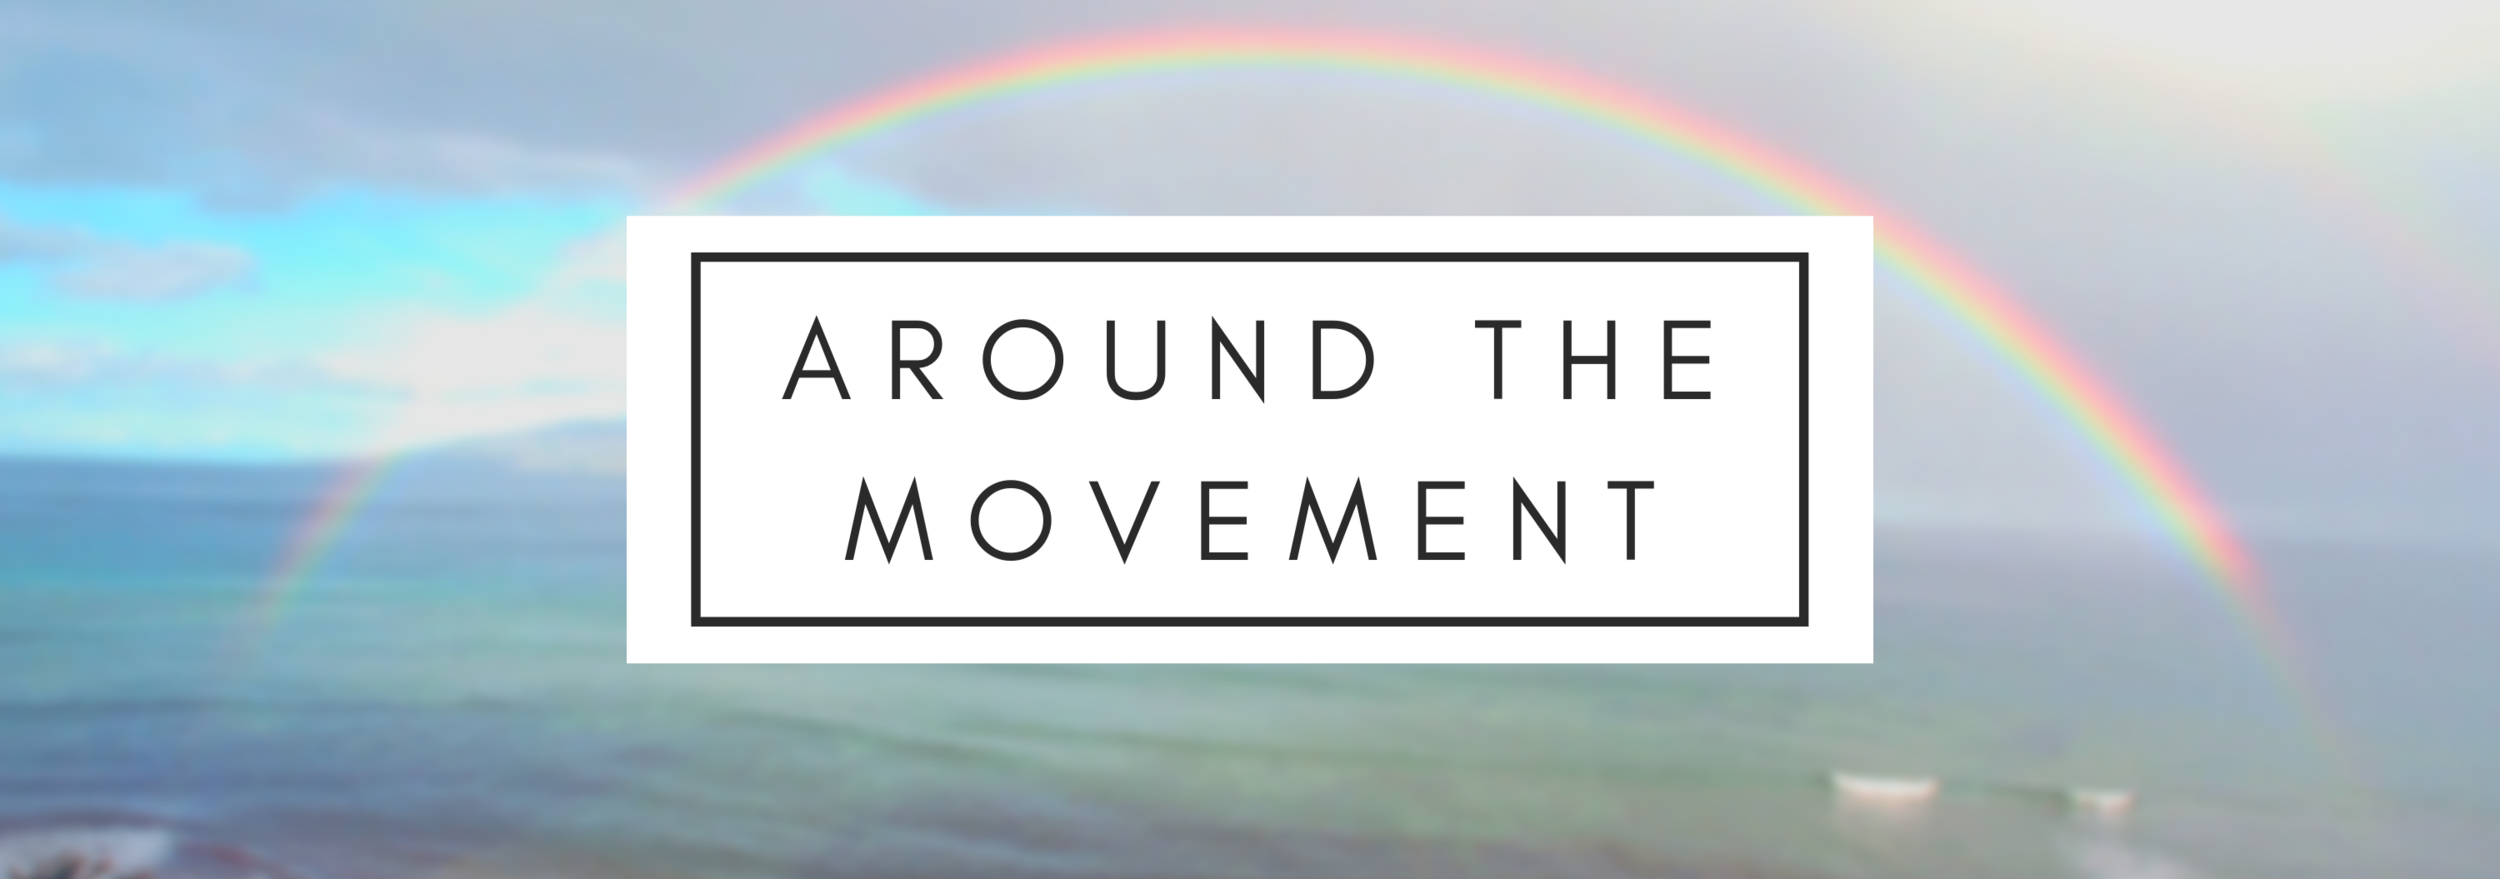 around the movement.png